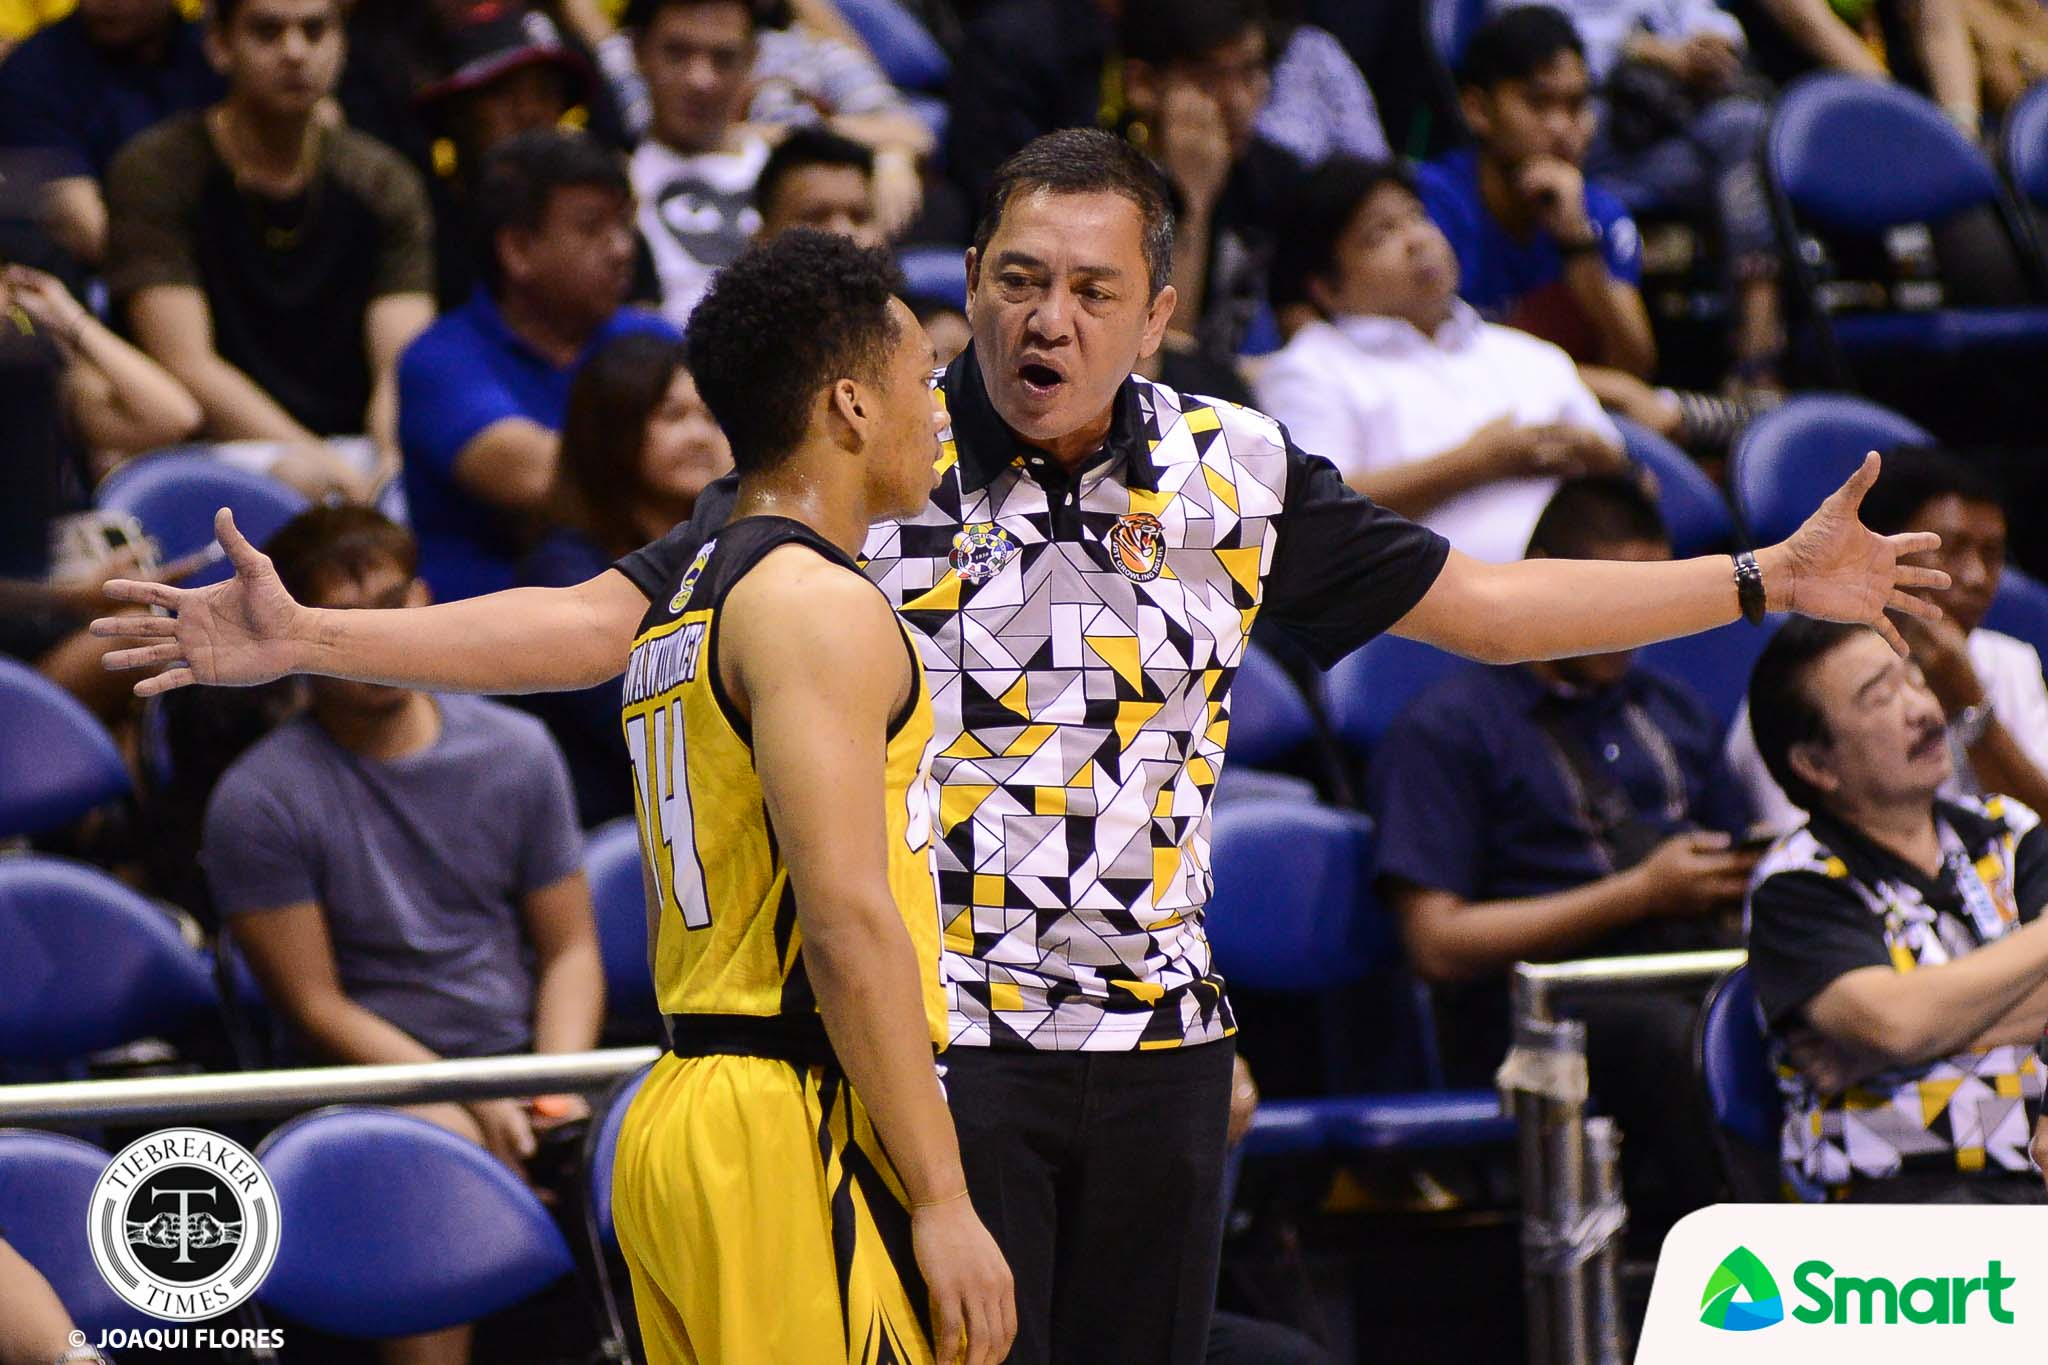 Philippine Sports News - Tiebreaker Times Boy Sablan beams after UST's gallant stand versus Ateneo Basketball News UAAP UST  UST Men's Basketball UAAP Season 80 Men's Basketball UAAP Season 80 Boy Sablan